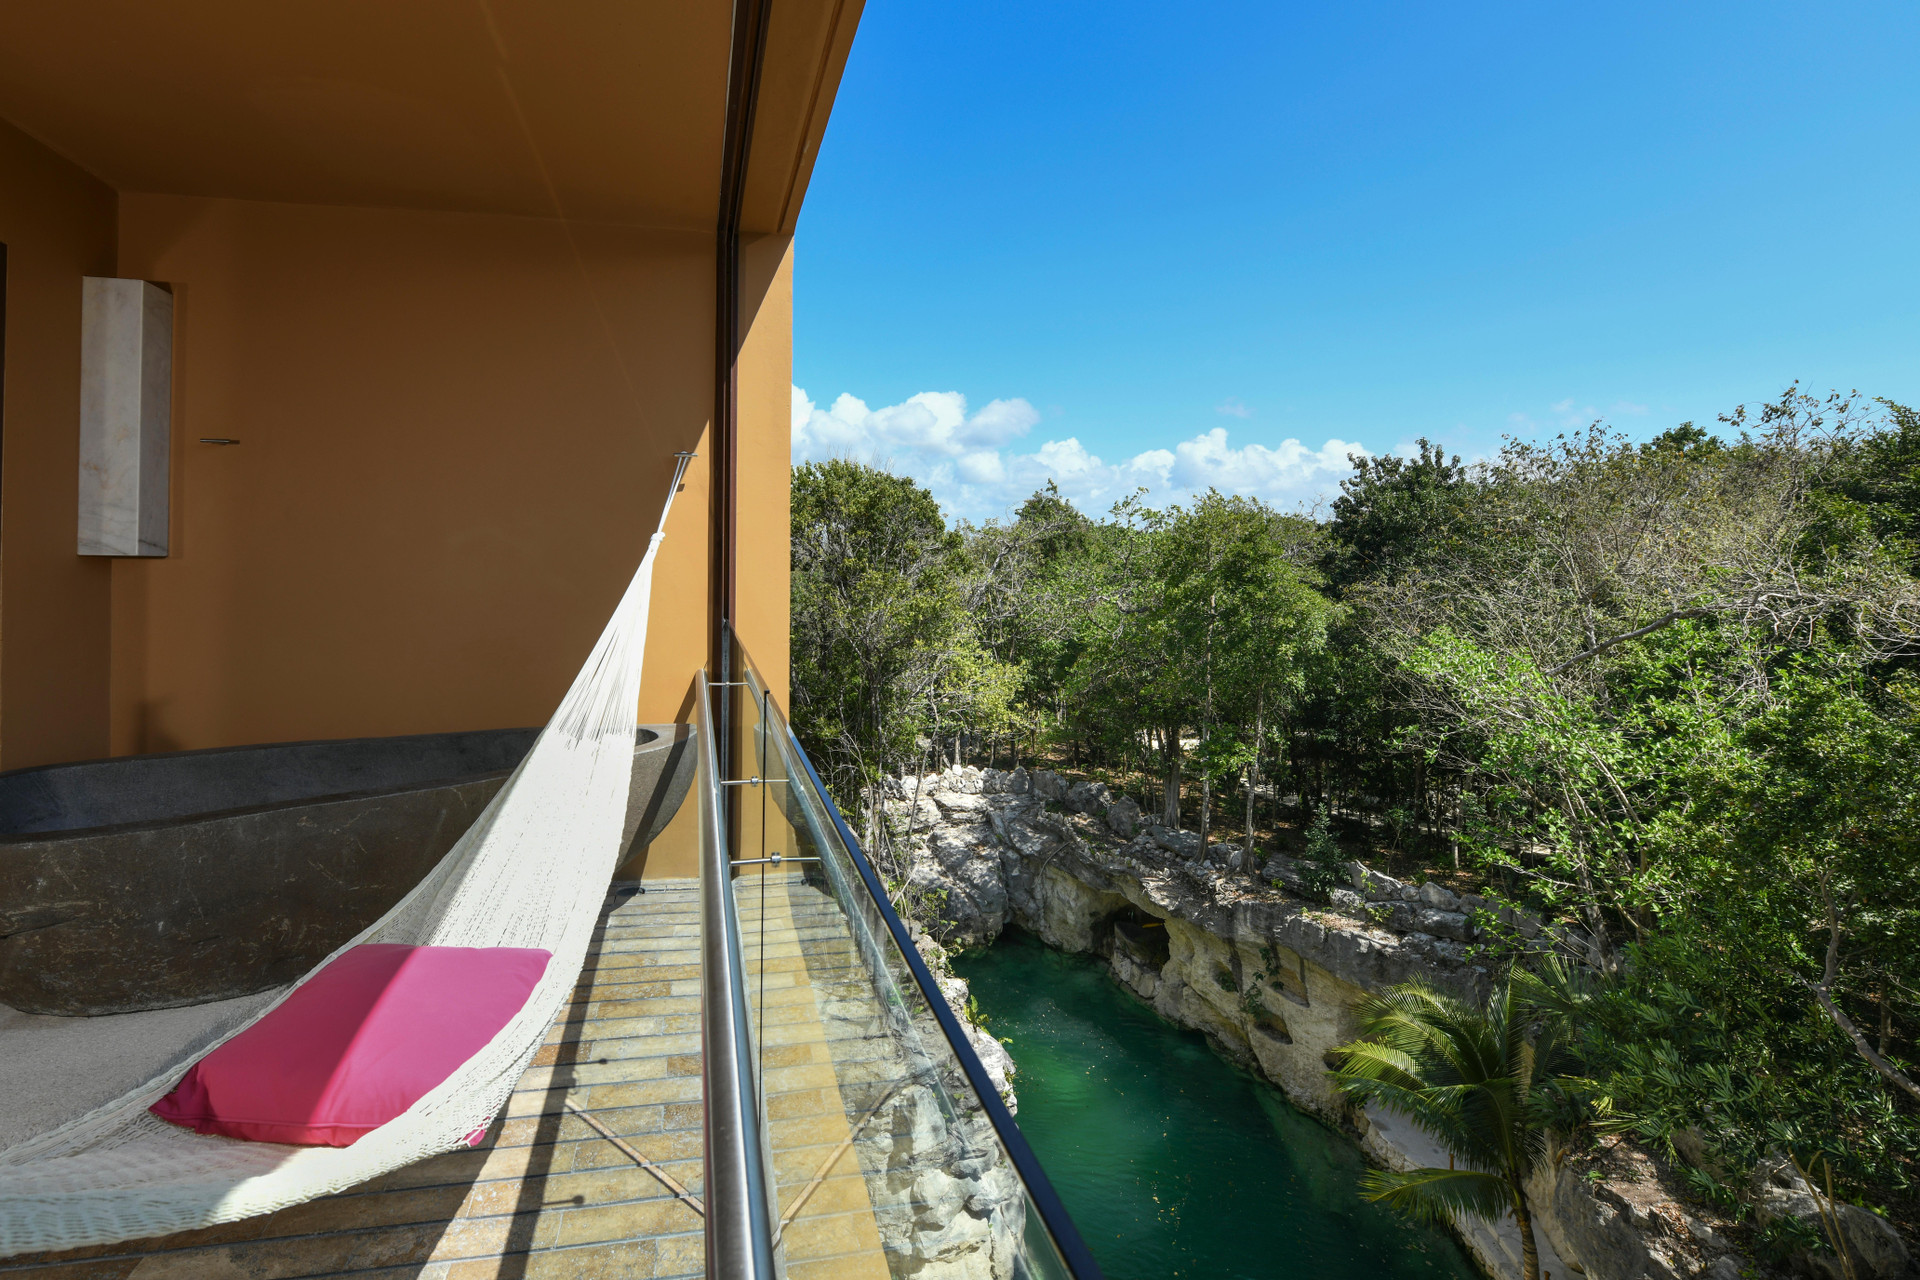 058a278c-5ba0-4f06-8ca8-3596a1f509f4 Hotel Xcaret Mexico - All Parks and Tours / All Fun Inclusive